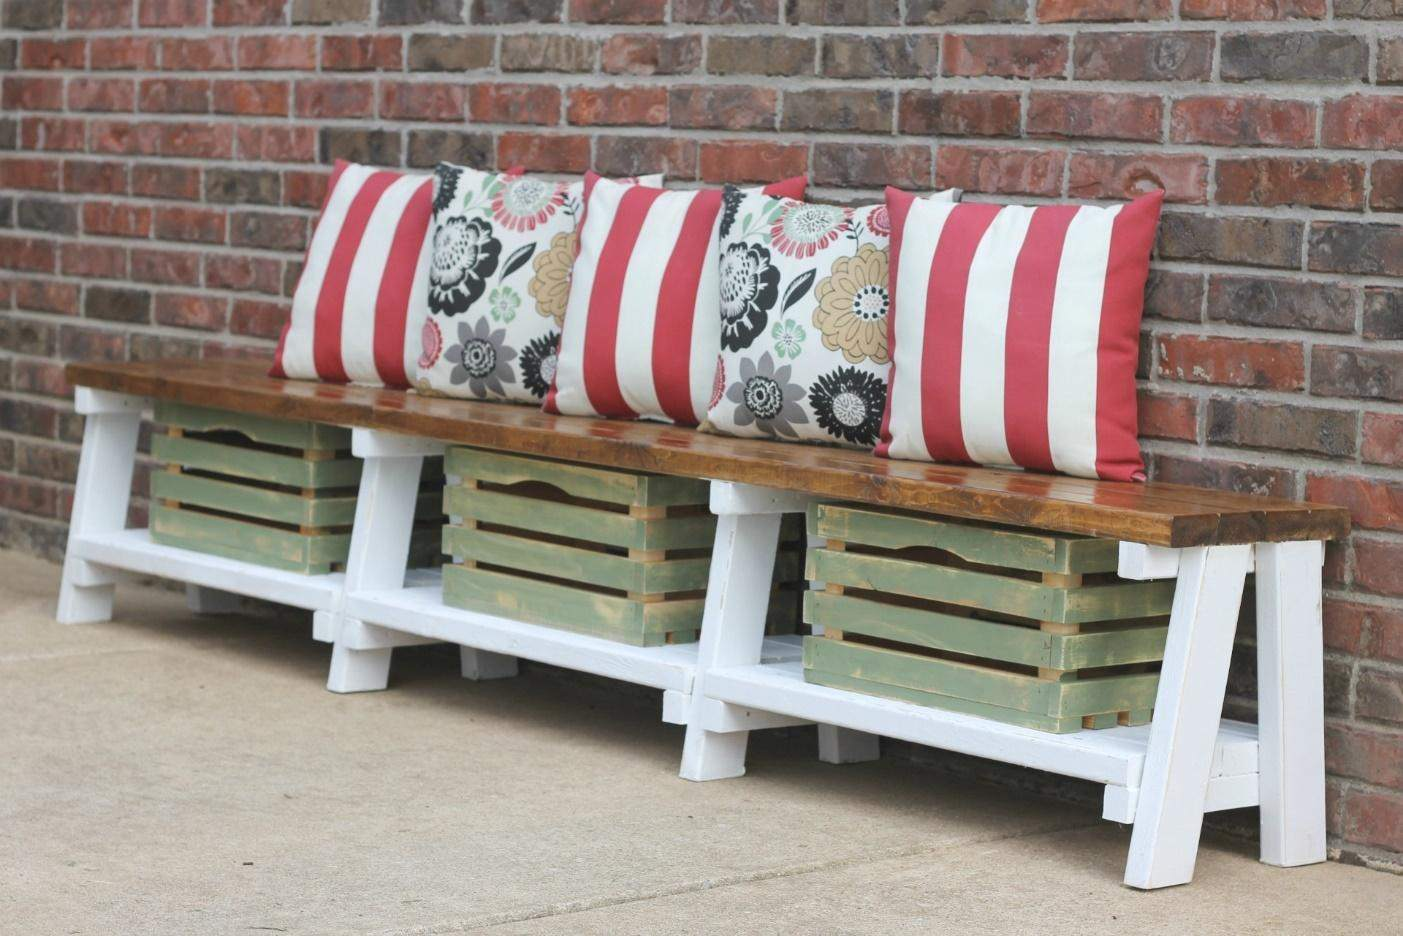 Crates placed beneath a bench with pillows on top